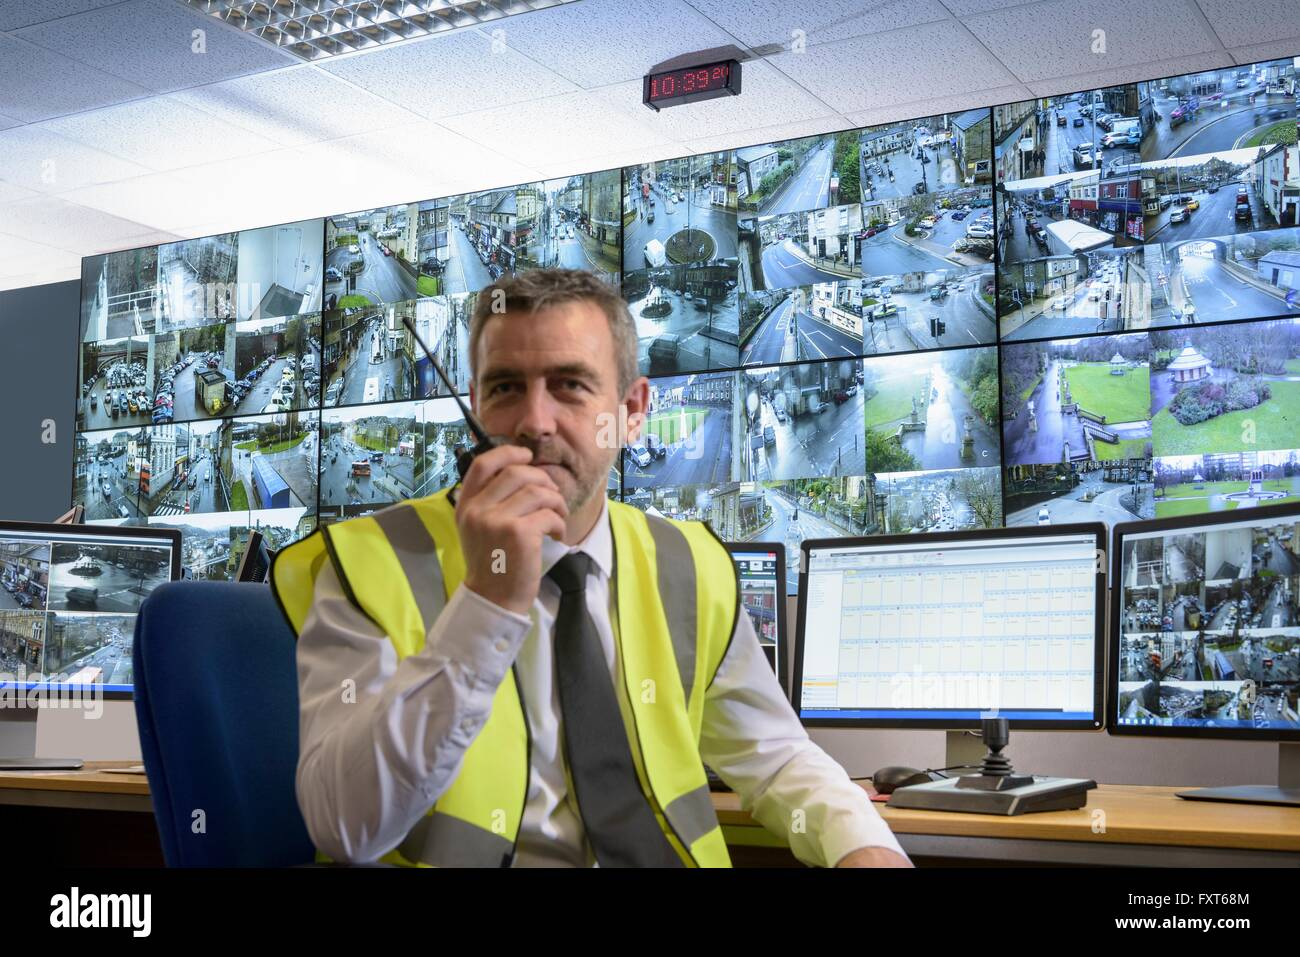 Portrait of security guard using walkie talkie in security control room with video wall - Stock Image